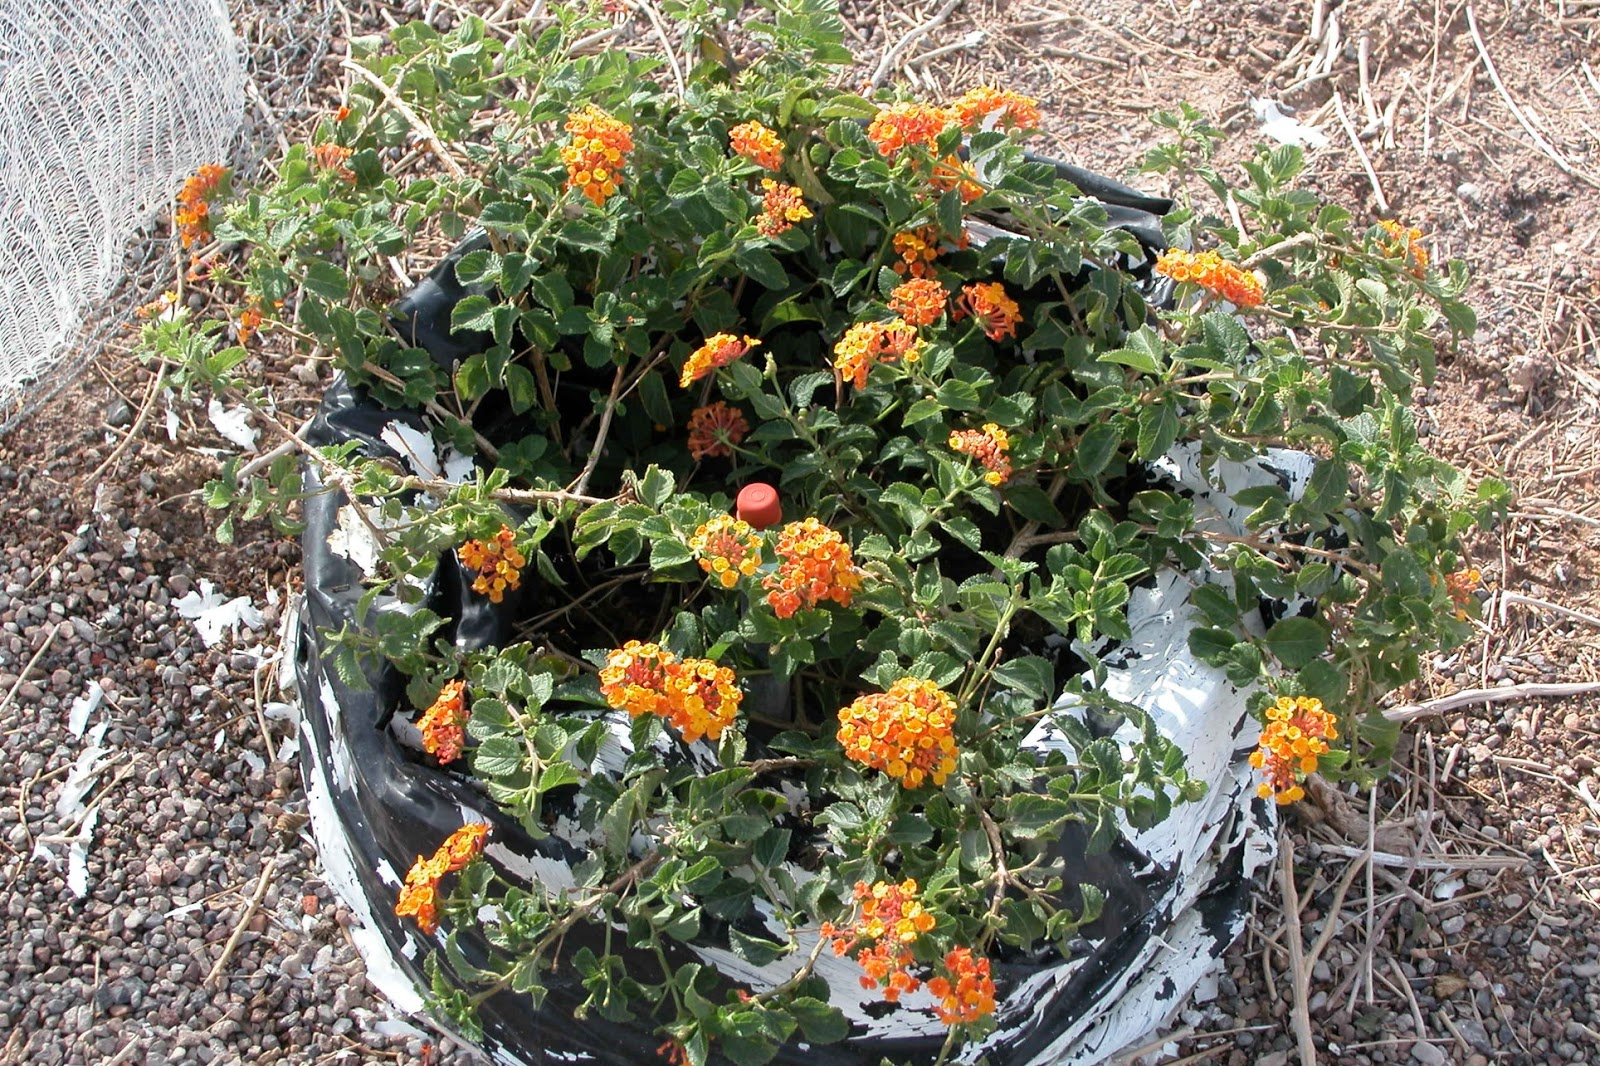 Xtremehorticulture Of The Desert Prune Lantana And Star Jasmine At